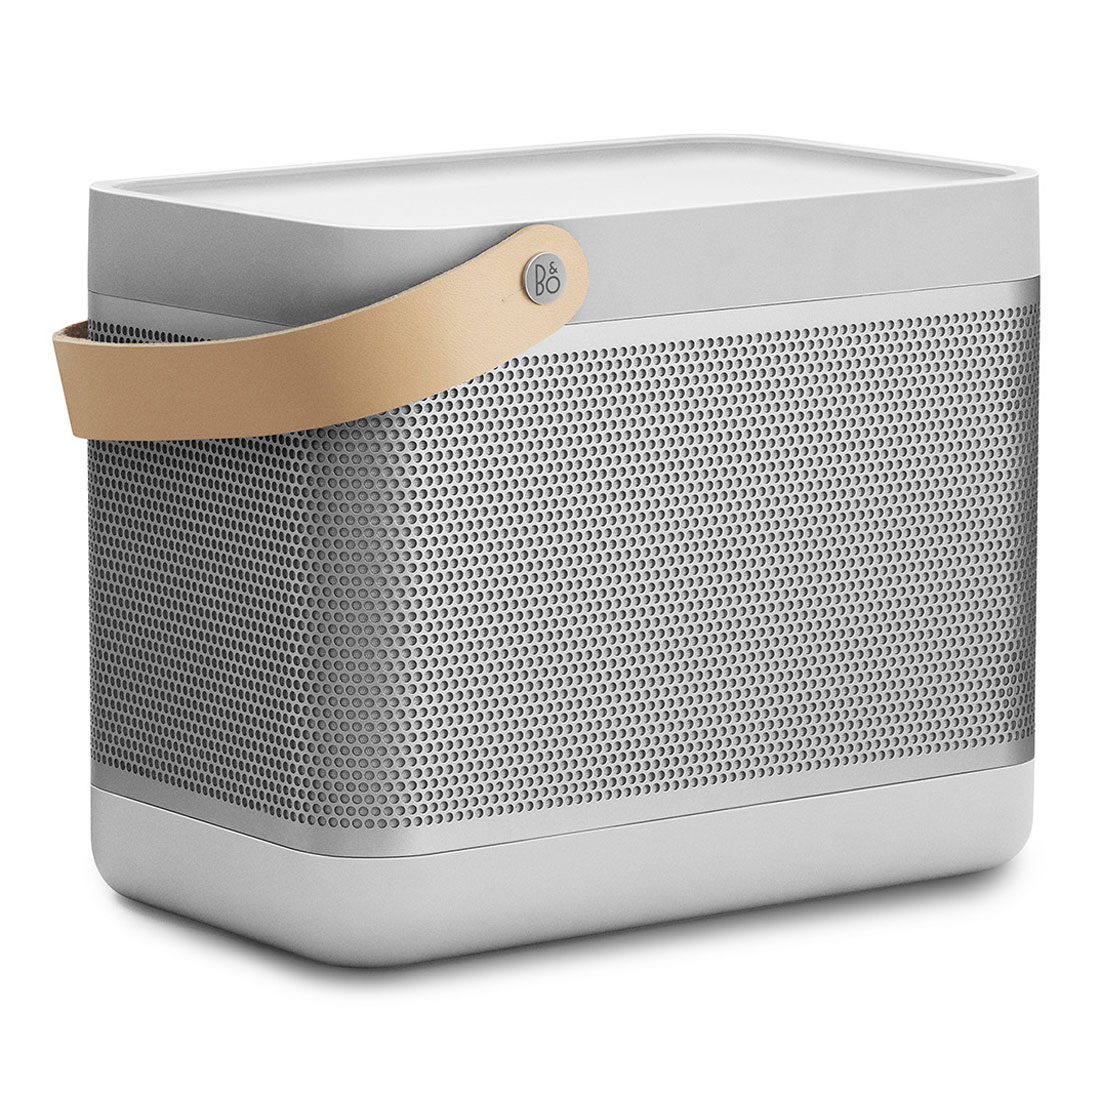 bang olufsen beolit 17 naturel dock enceinte bluetooth bang olufsen sur. Black Bedroom Furniture Sets. Home Design Ideas